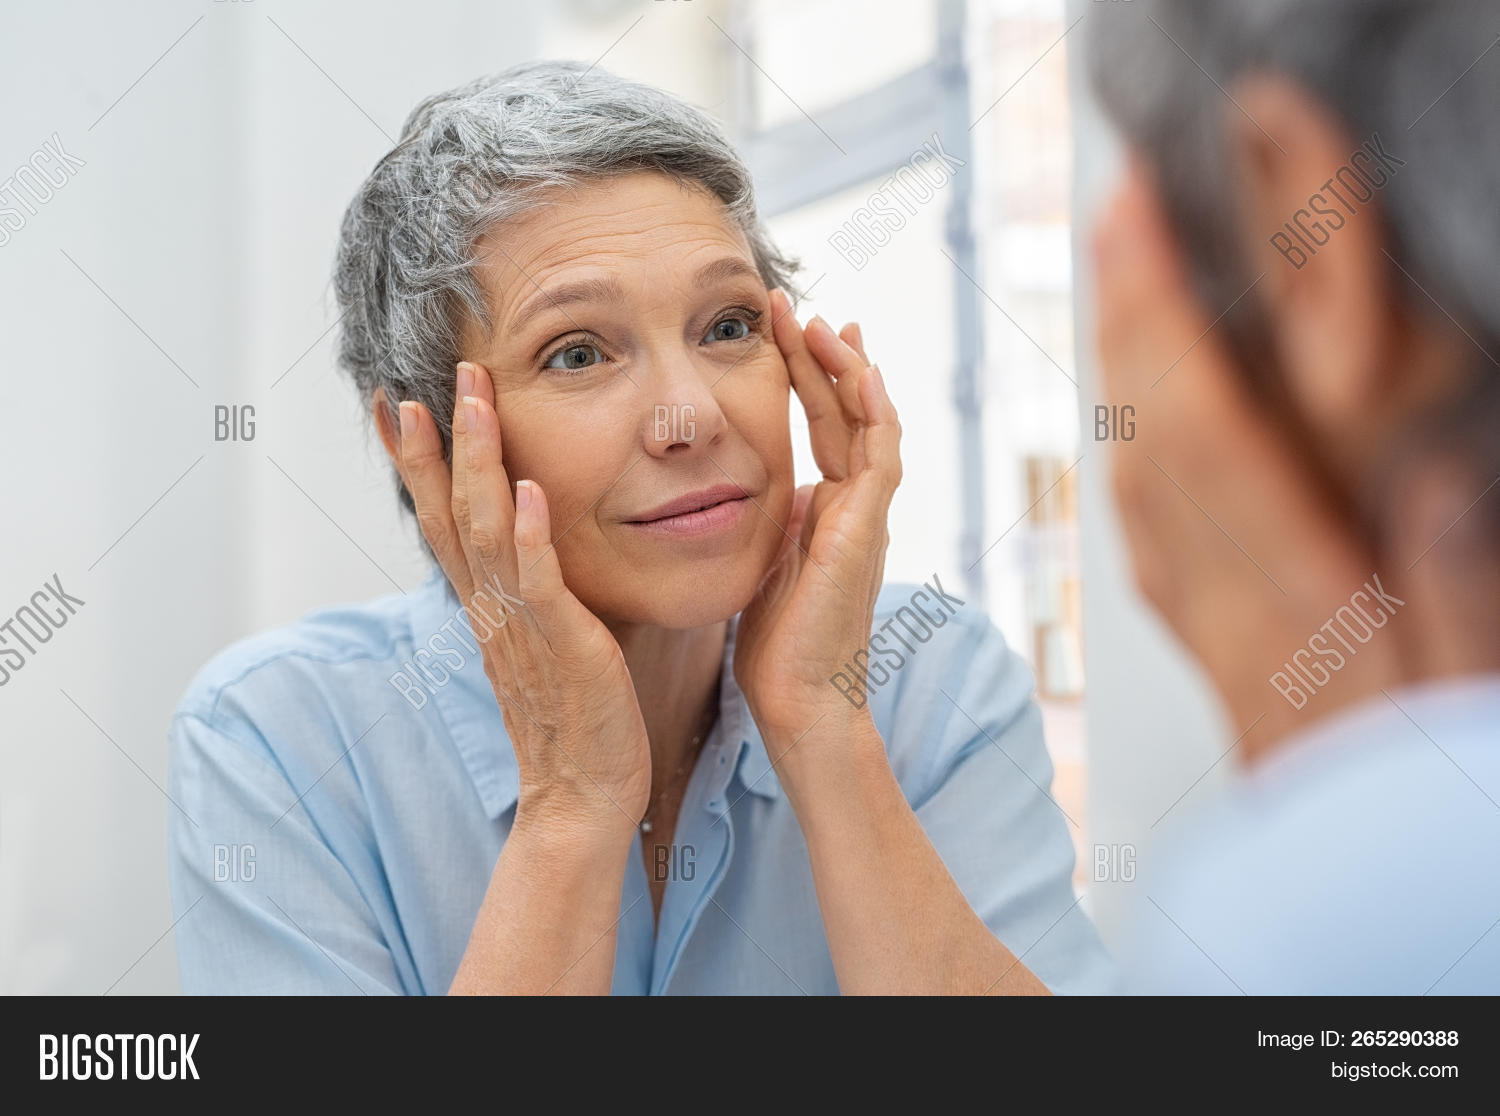 aged,aging,anti aging,applying,bathroom,bathroom mirror,beautiful,beauty,blemish,blemish face,blemished skin,care,caucasian,checking,cheerful,clean,elder,elderly,elderly woman,examining,eye,face,facial,gray hair,healthcare,healthy,lifting,looking,looking at mirror,massage,mature,middle aged woman,mirror,moisturizing,morning,old woman,routine,senior,senior woman,skin,skincare,touching,treatment,wrinkle,wrinkled,wrinkled face,wrinkled skin,wrinkles